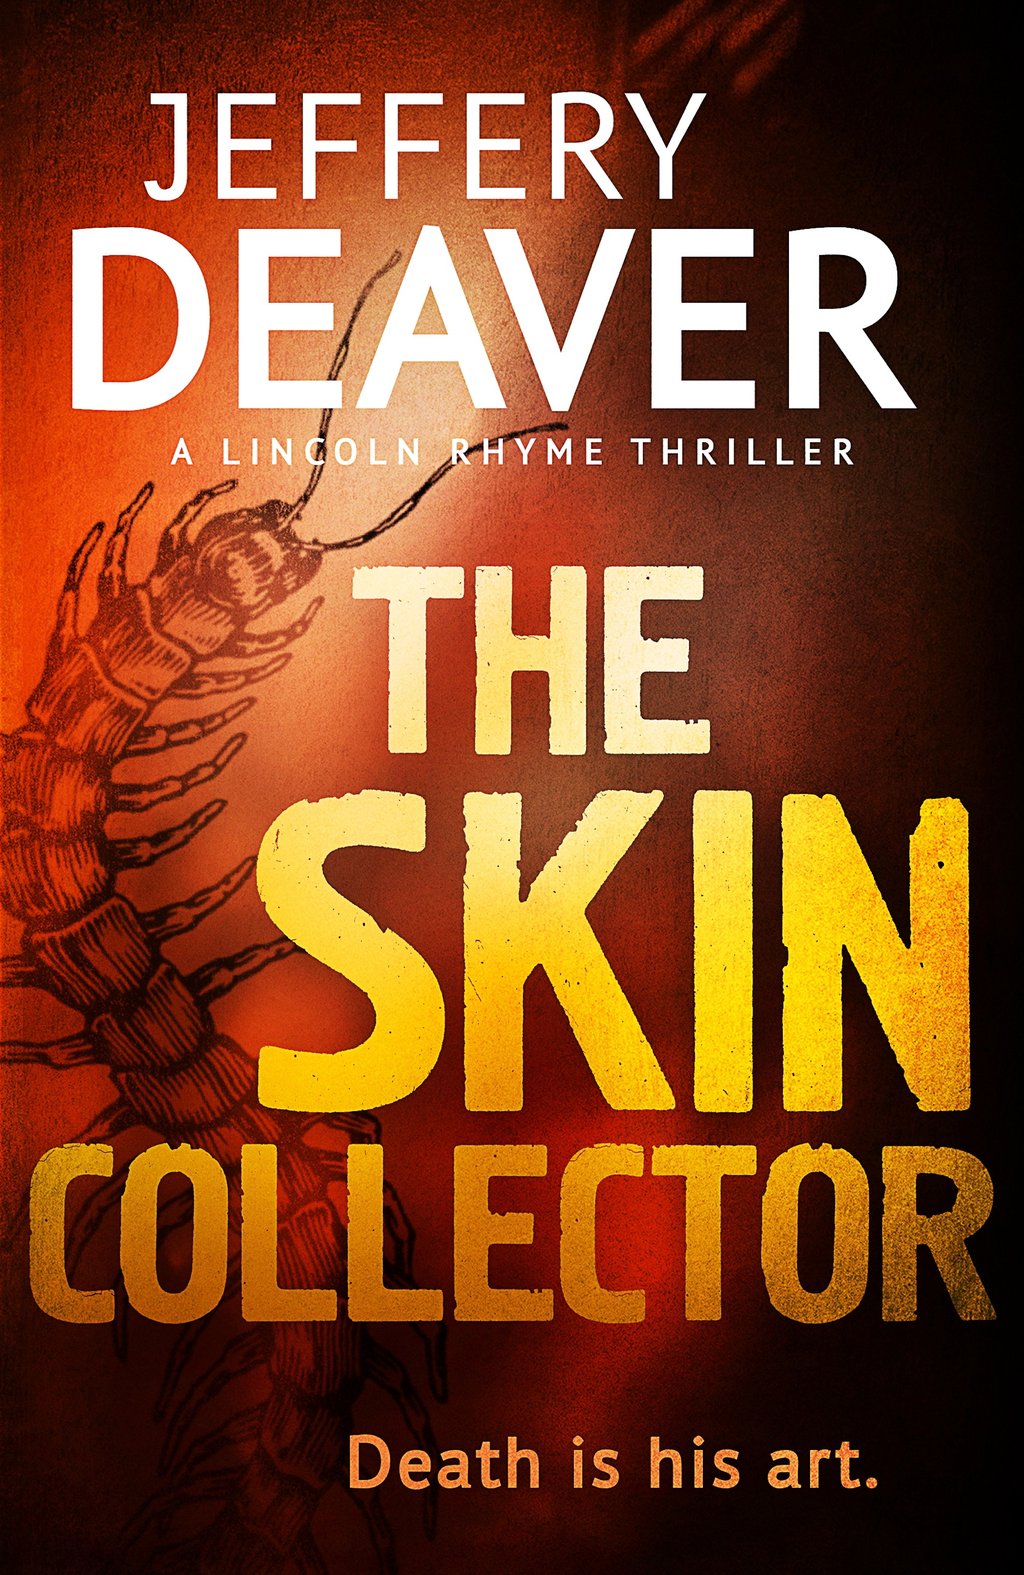 The Skin Collector Lincoln Rhyme Book 11